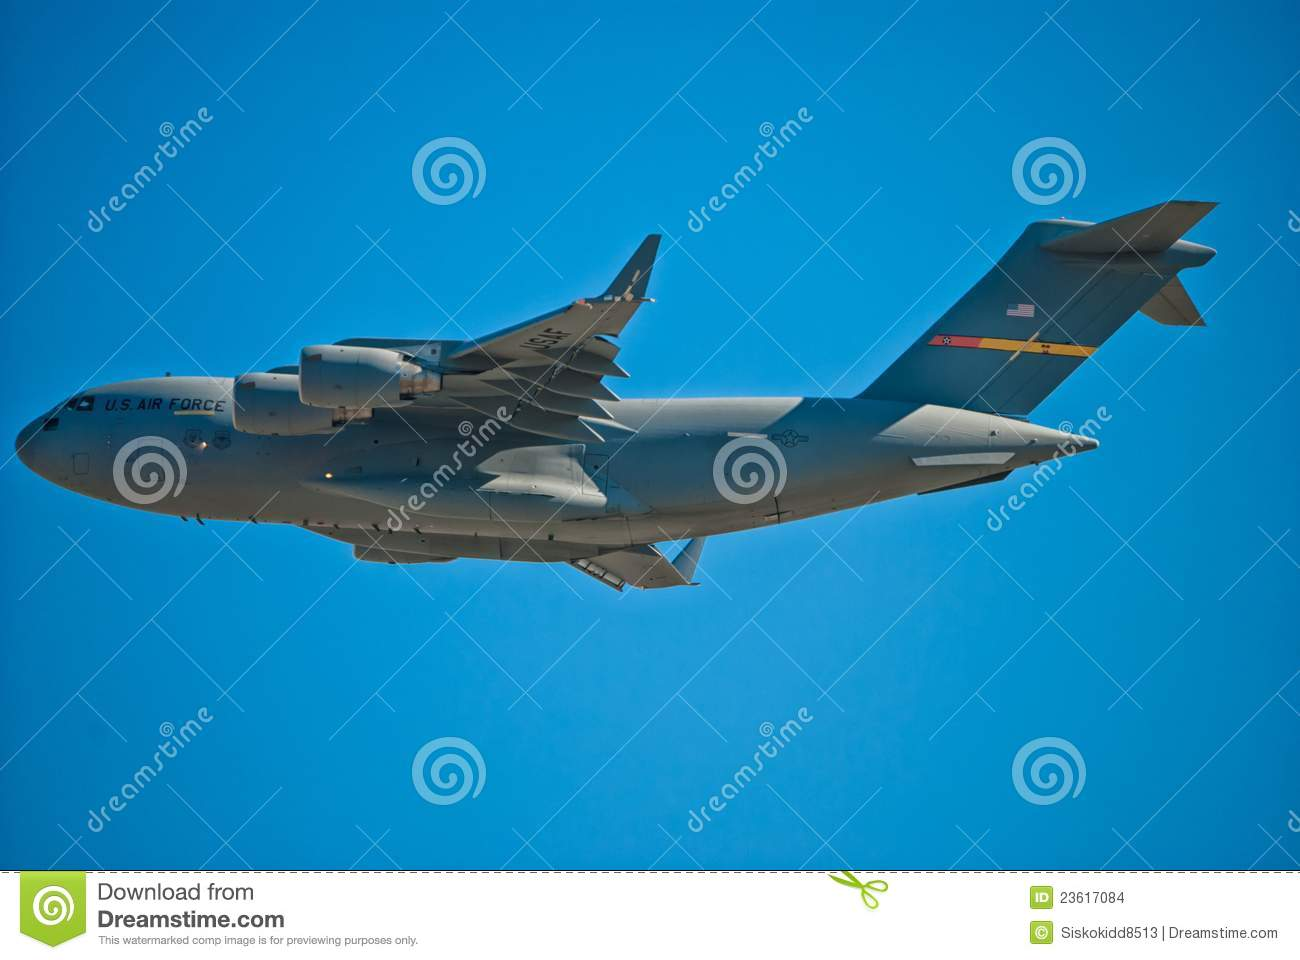 Now, it will be making its way to the florida. C17 Globemaster stock photo. Image of engine, usaf